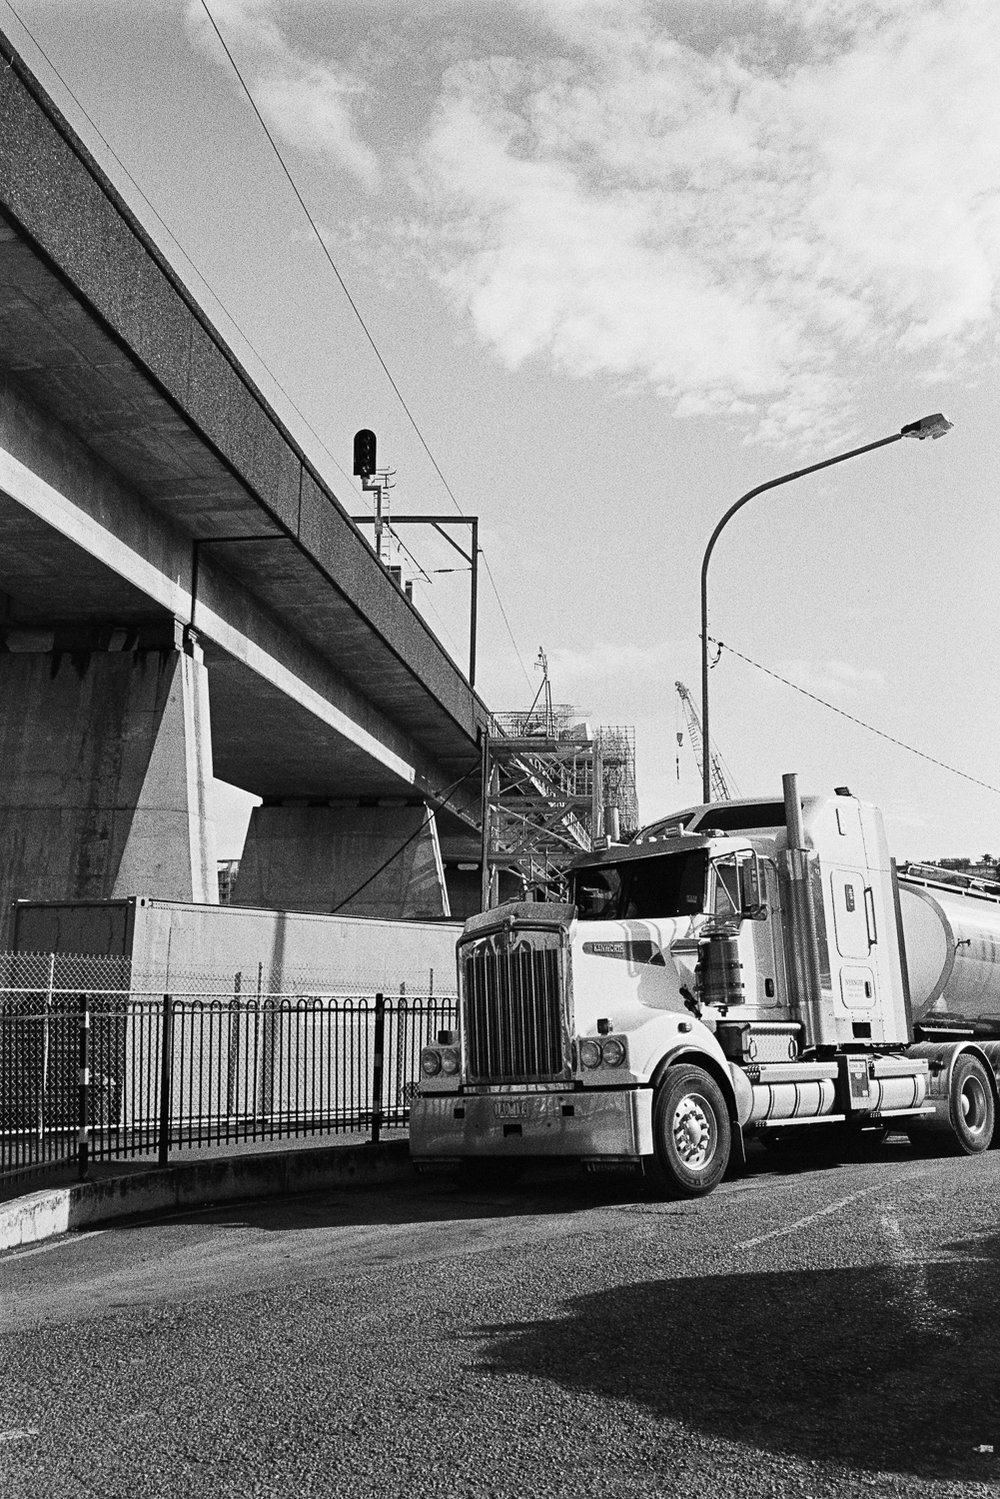 20170612 - Roll 139 - 022-Nick-Bedford,-Photographer-Black and White, Film, Kodak Tri-X 400, Leica M7, Merivale Rail Bridge, Rodinal, South Brisbane, Street Photography, Voigtlander 35mm f1.7 Ultron Aspherical.jpg